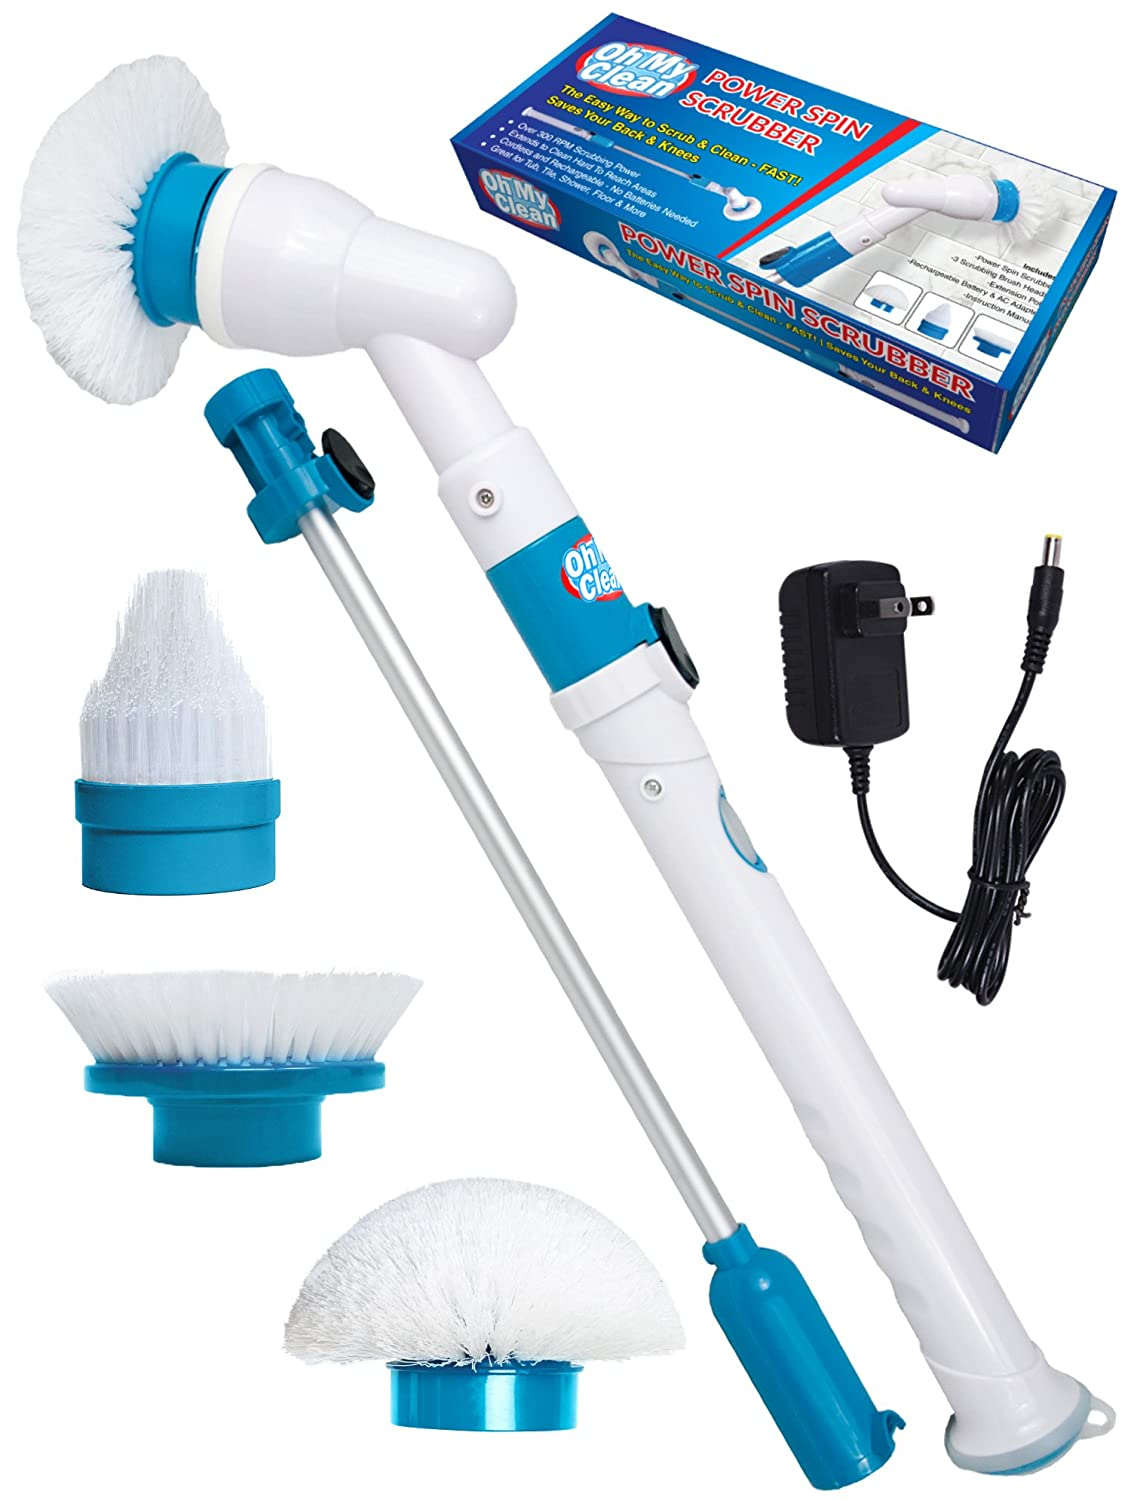 Amazoncom Power Spin Scrubber Cleaning Brush Upgraded Electric - Battery powered scrub brush